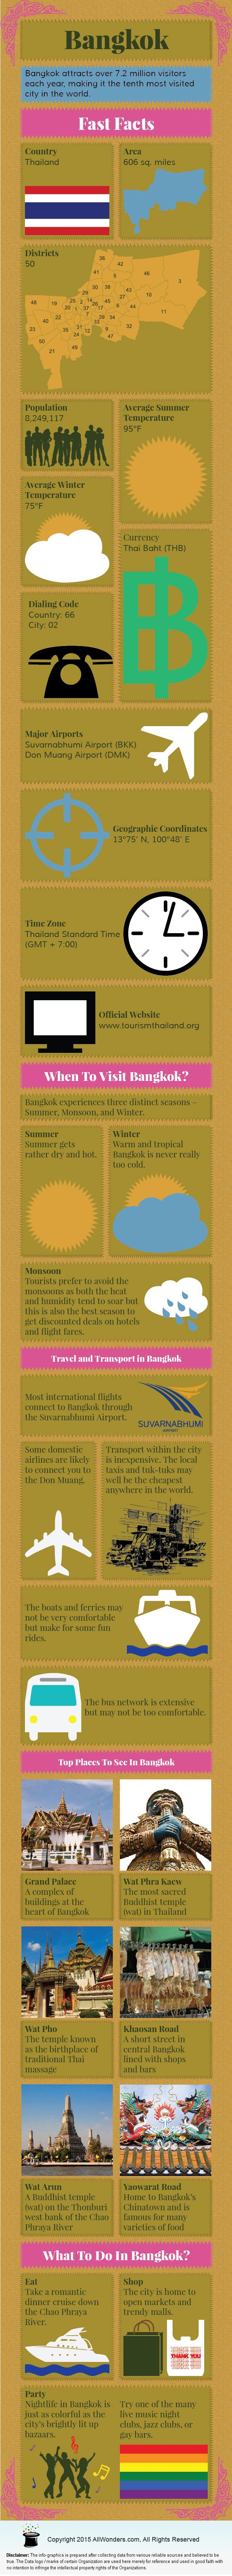 Bangkok Travel Infographic, Facts about Bangkok